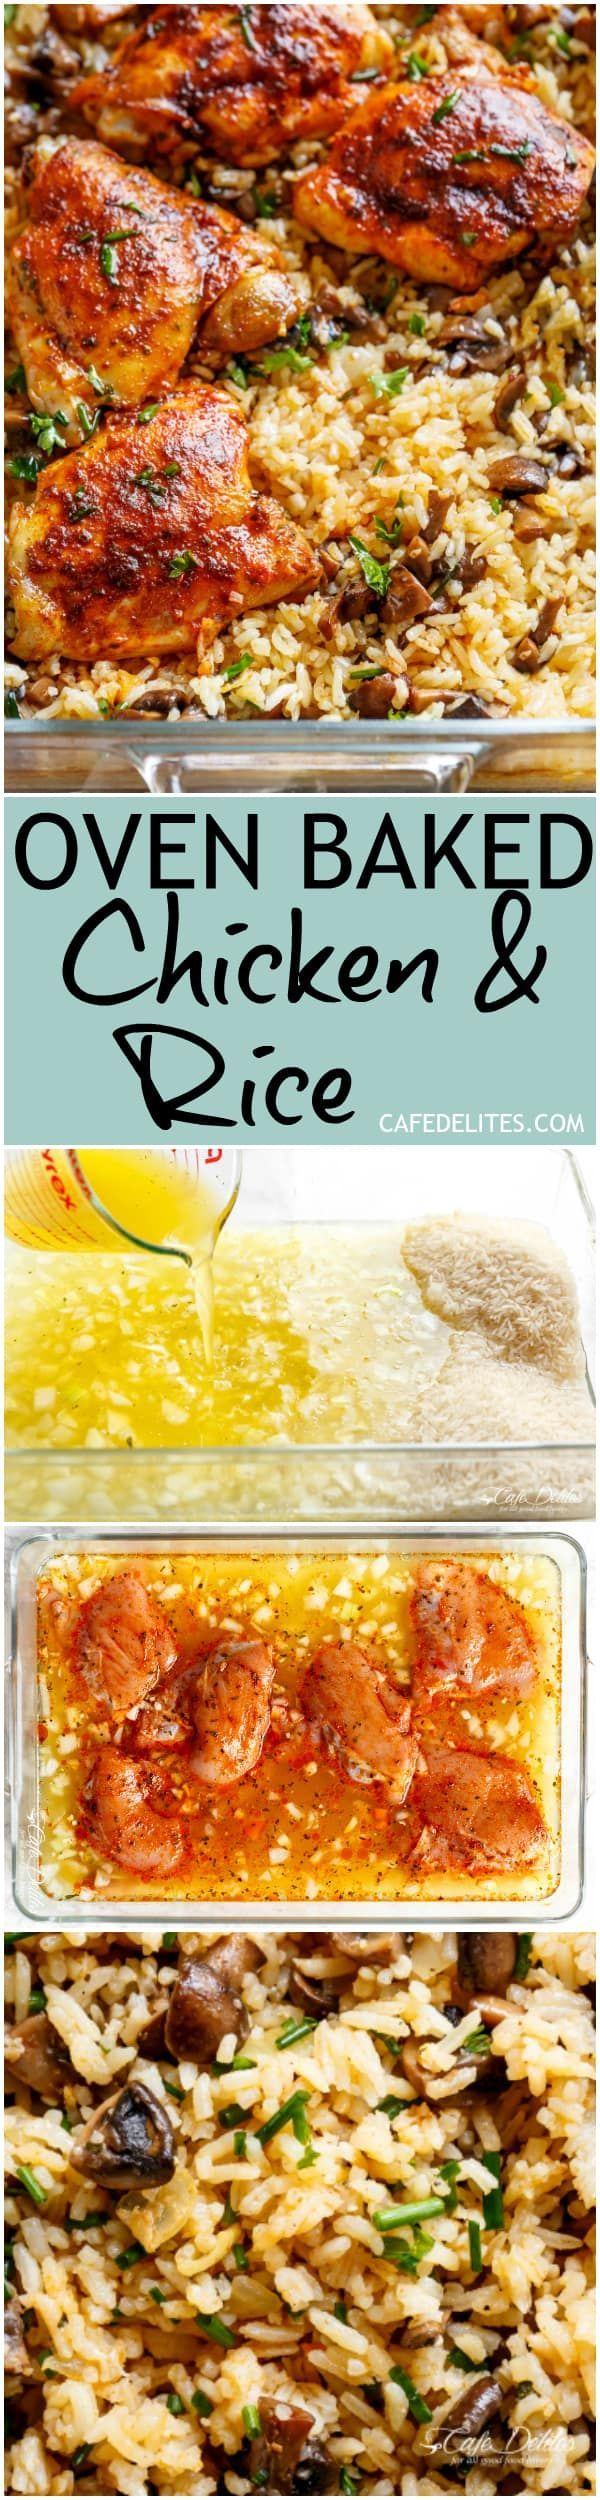 Easy Oven Baked Chicken And Rice With Garlic Butter Mushrooms mixed through is winner of a chicken dinner! #ovenbakedchickenandrice